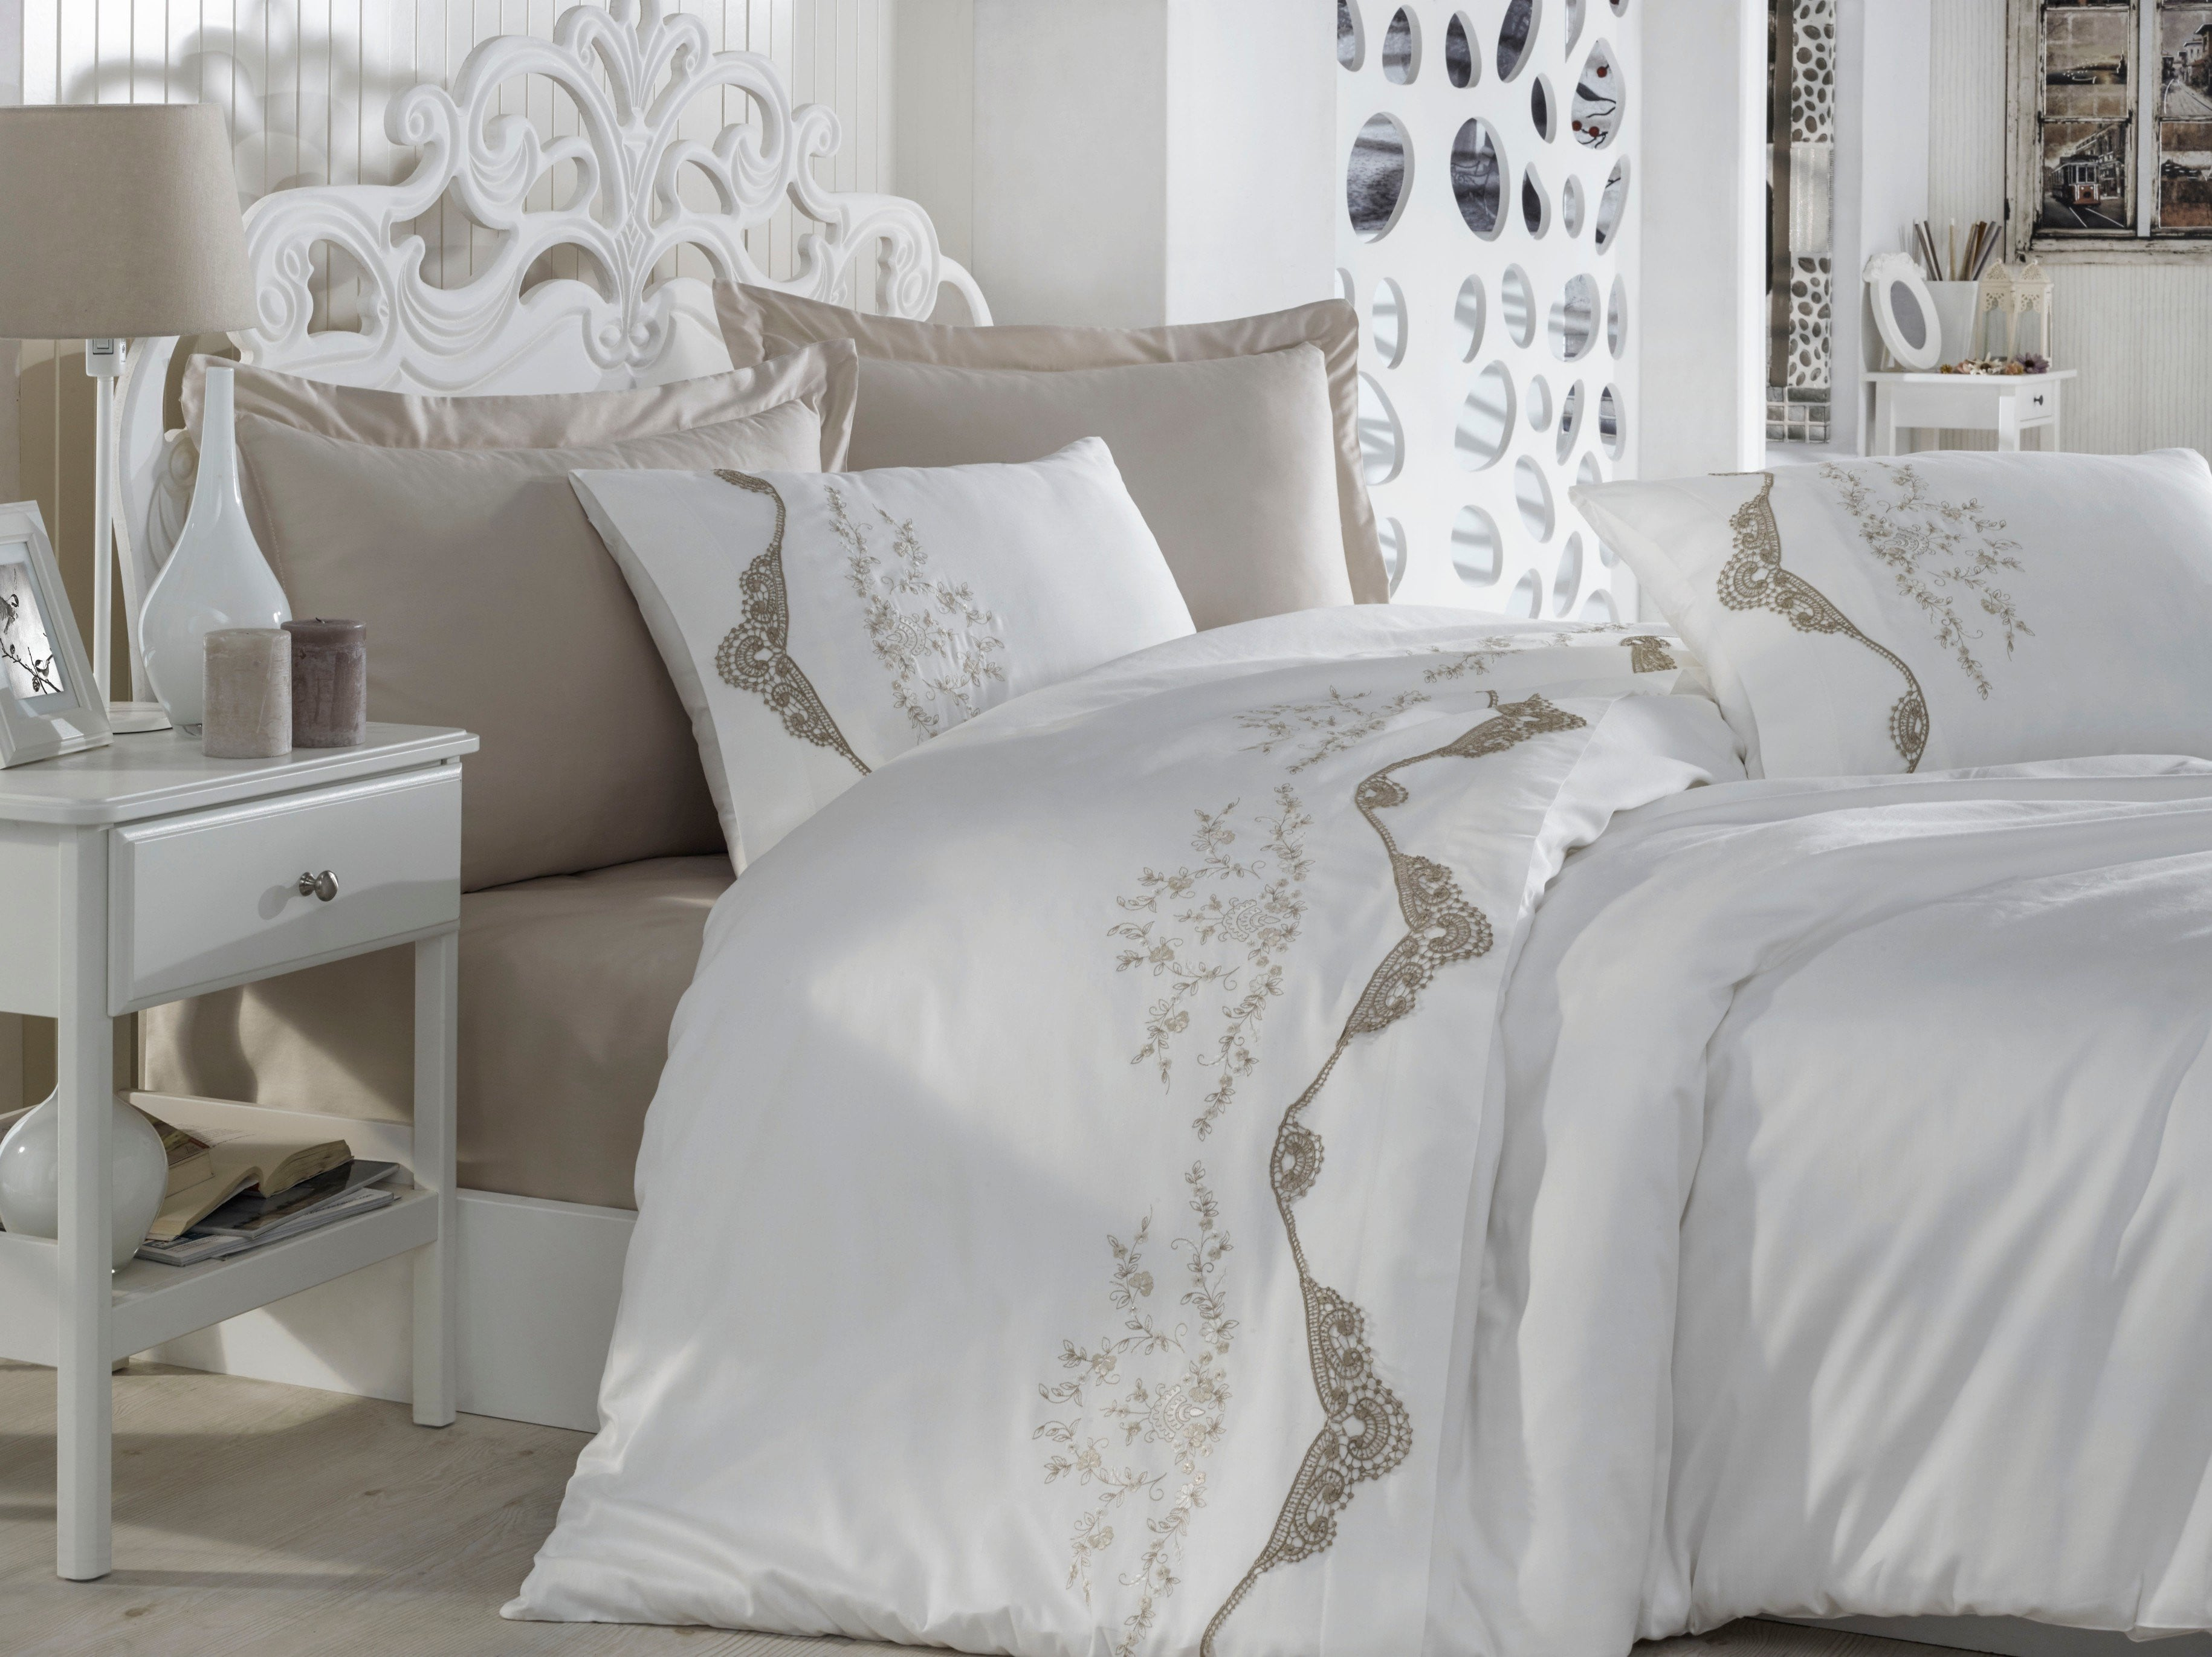 EMBROIDERIED COTTON SATIN DUVET COVER SET DECORATED WITH GUIPURE - COTTONISH